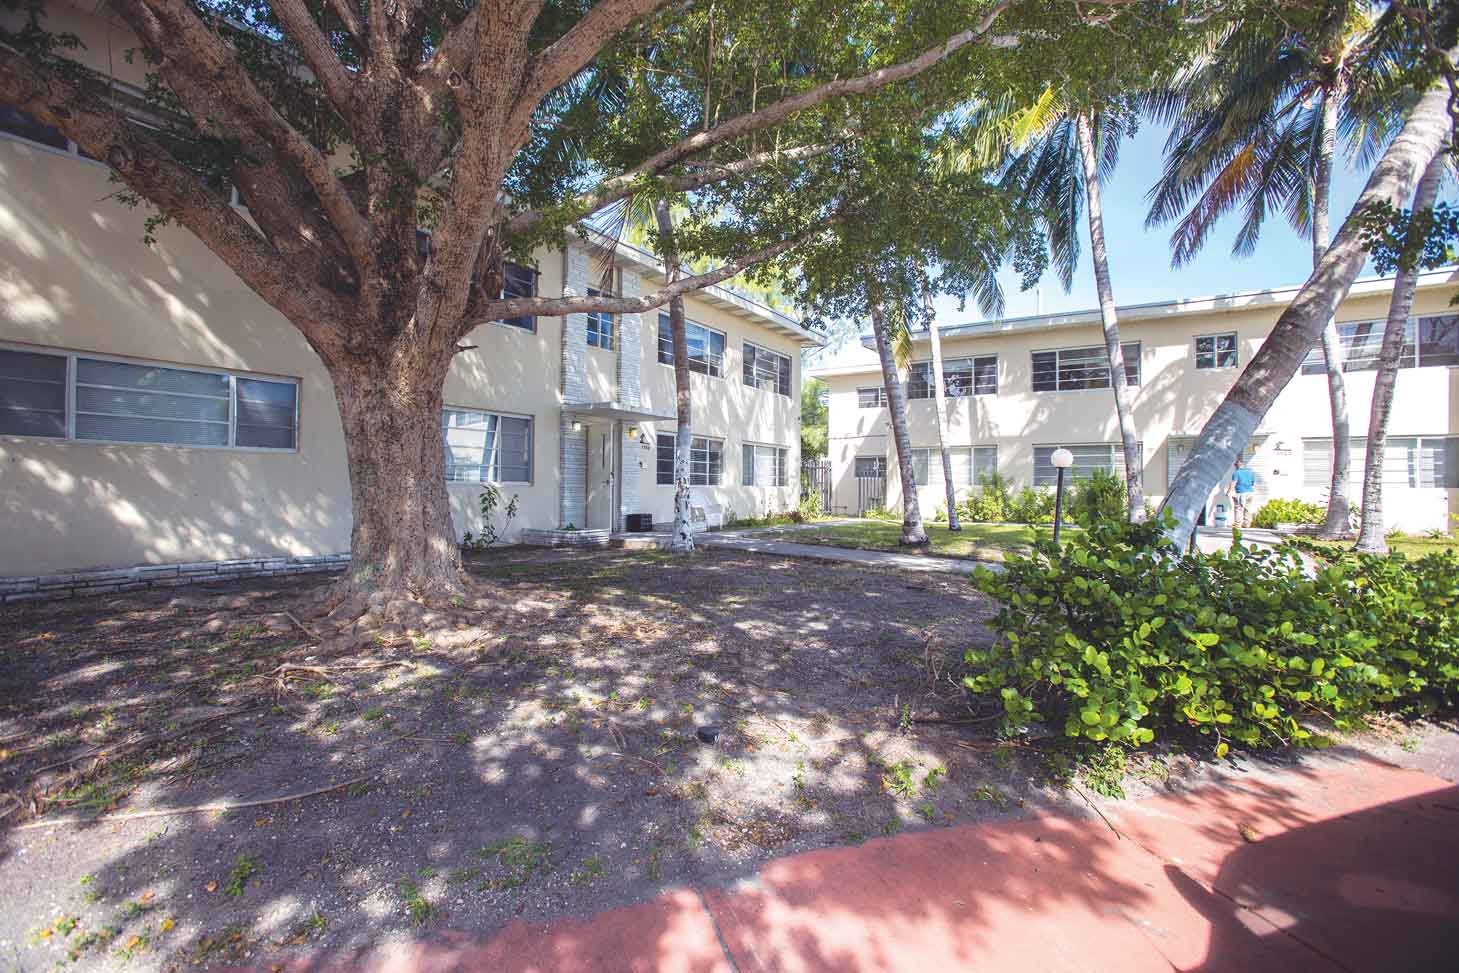 Crumbling affordable housing in Miami Beach faces deadline